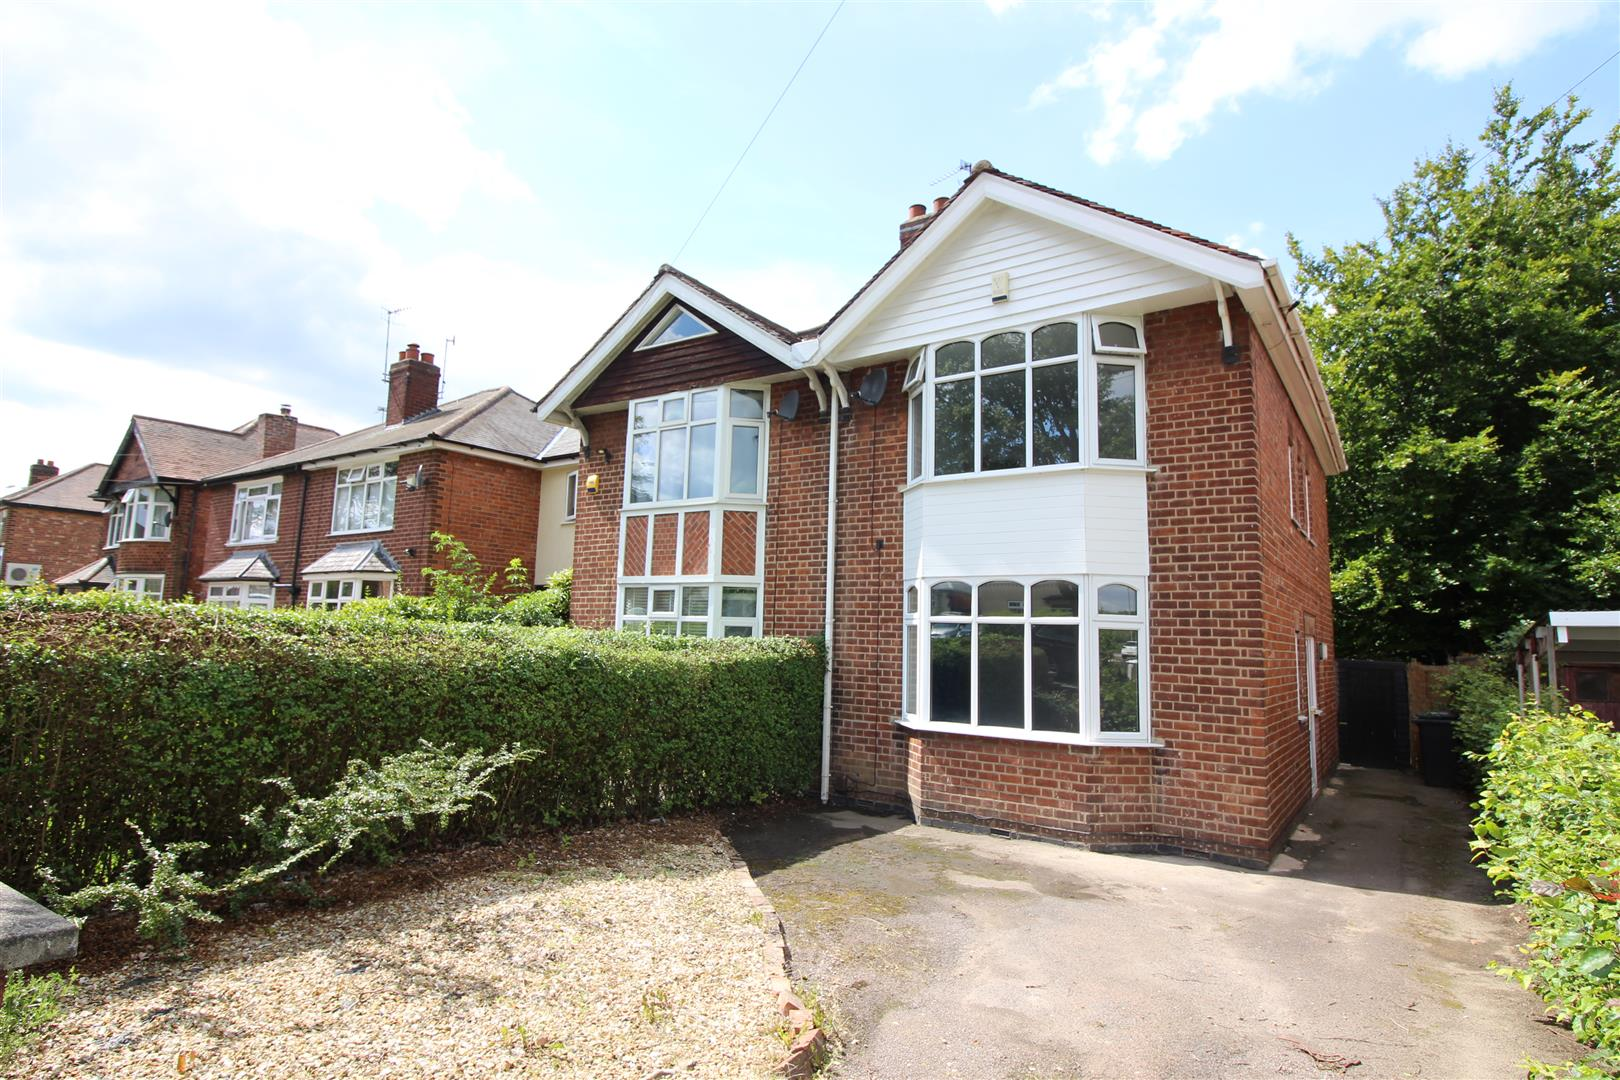 2 Bedrooms Semi Detached House for sale in Pasture Road, Stapleford